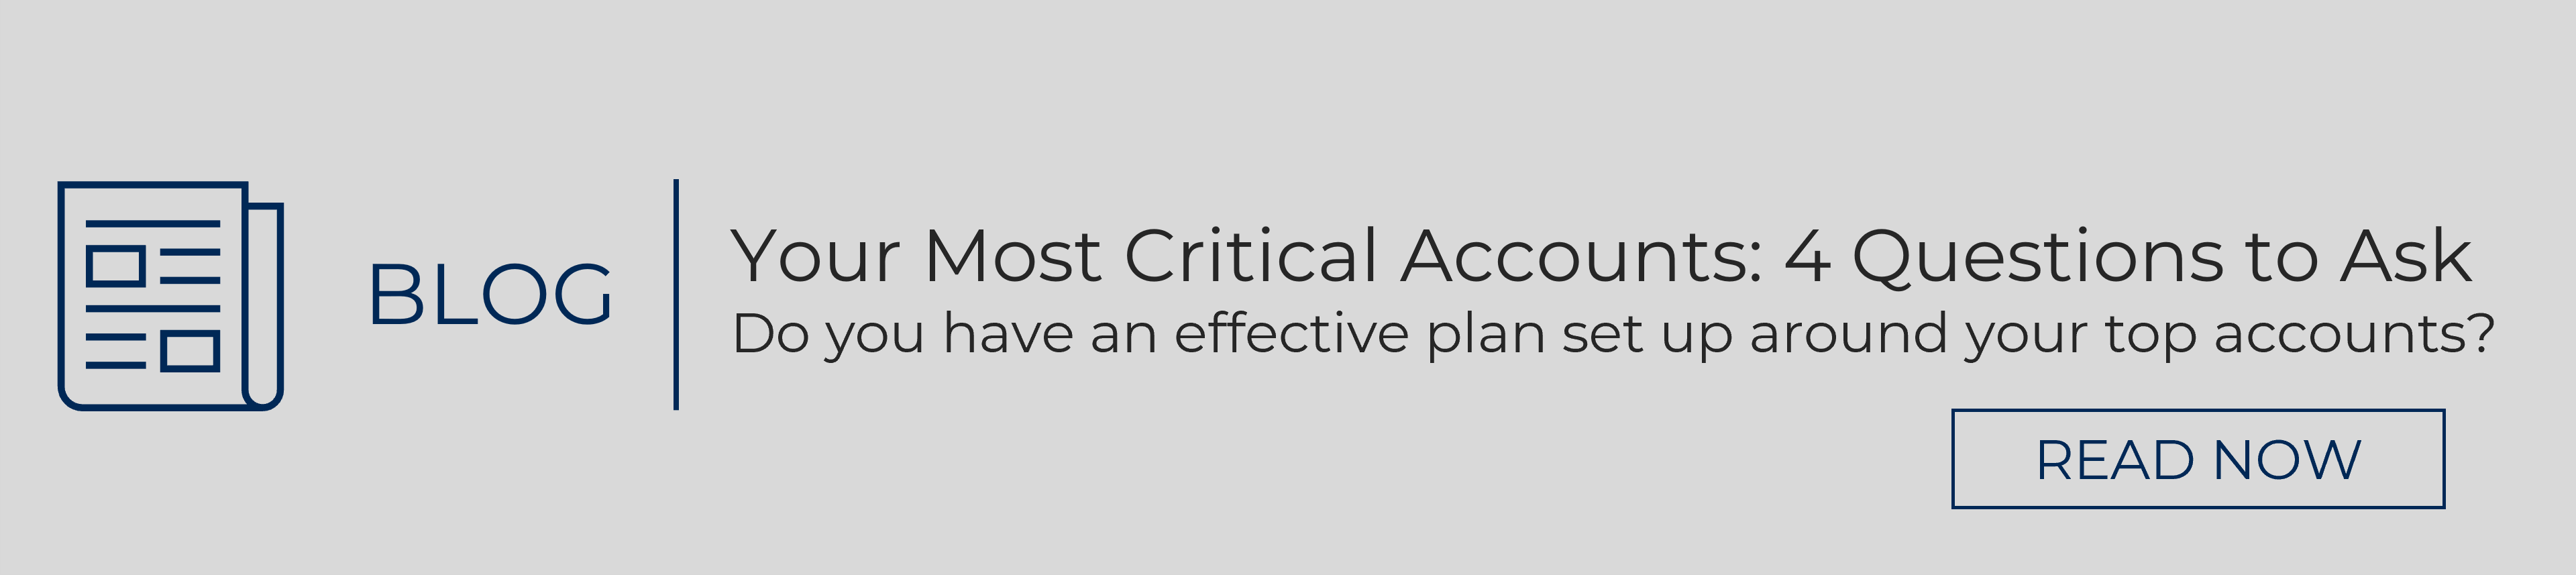 Blog banner to blog: Your Most Critical Accounts 4 Questions to Ask